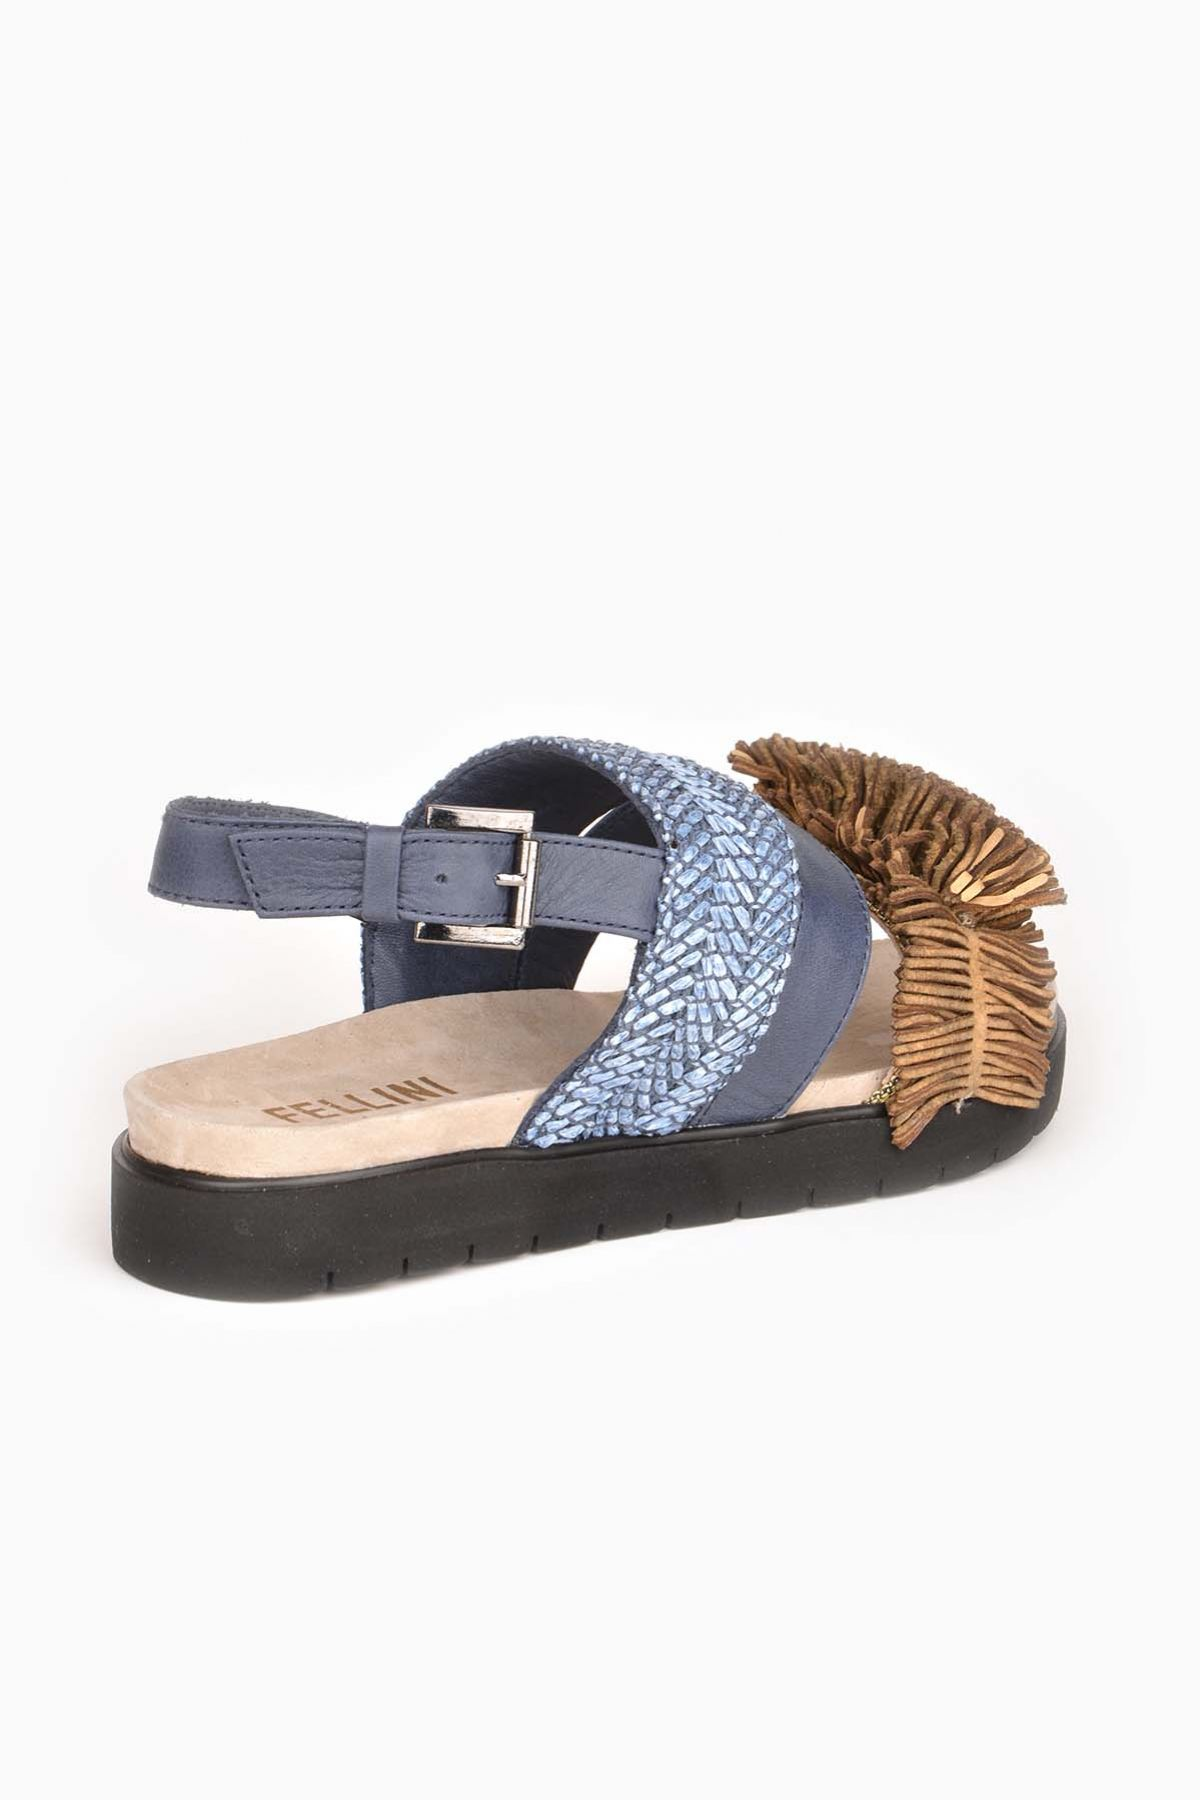 Fln Women Sandals From Genuine Leather Blue